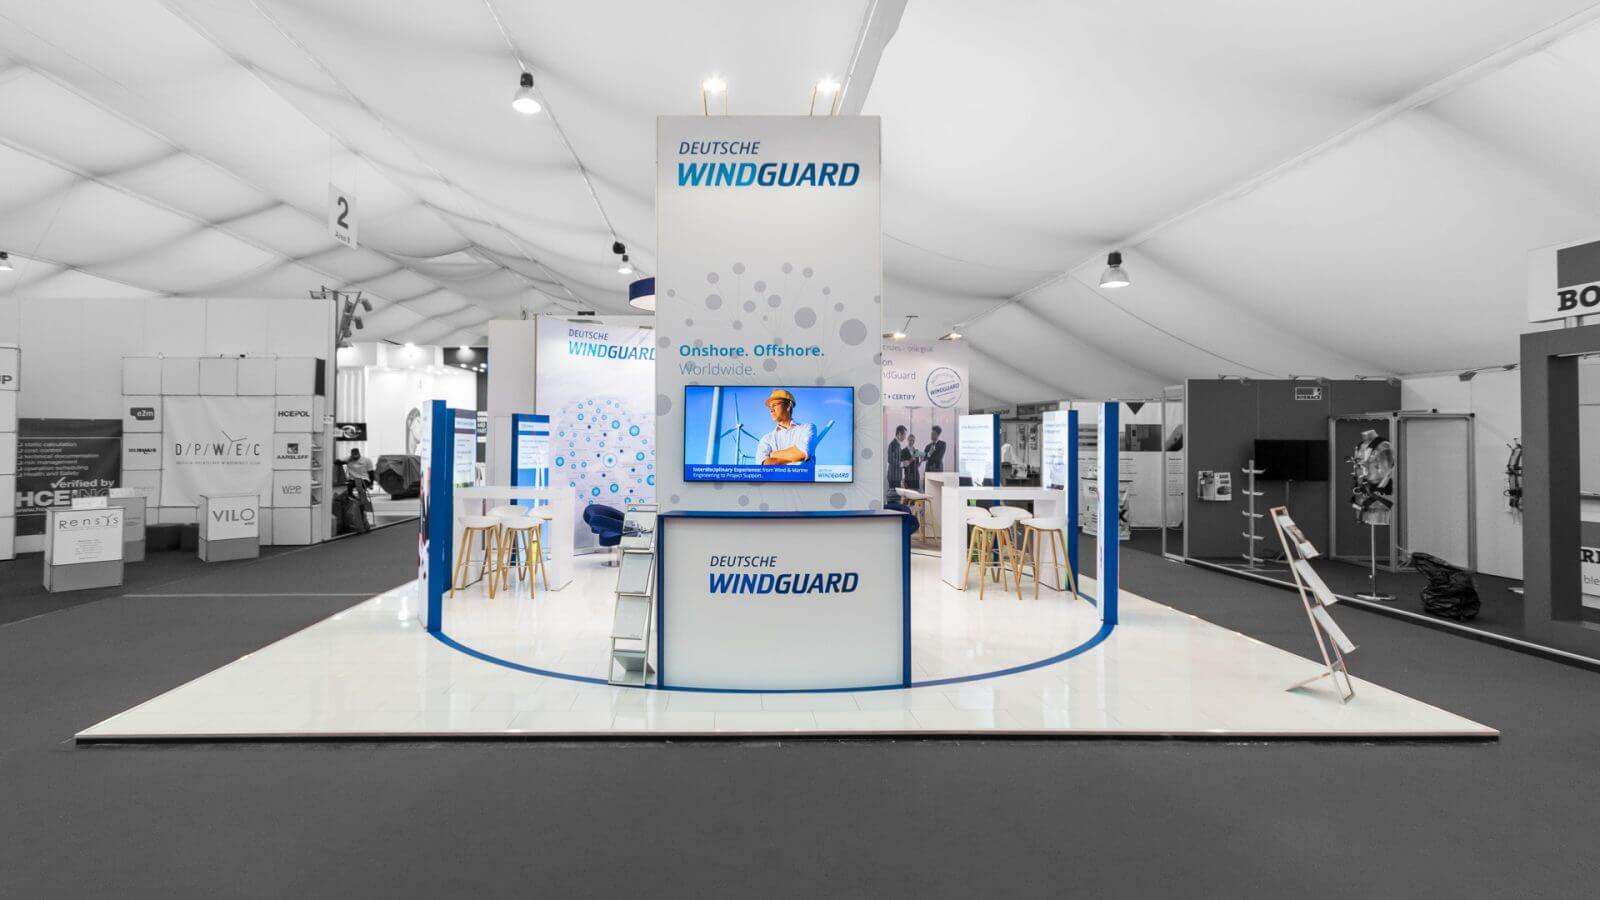 Deutsche Windguard Wind Energy 2017